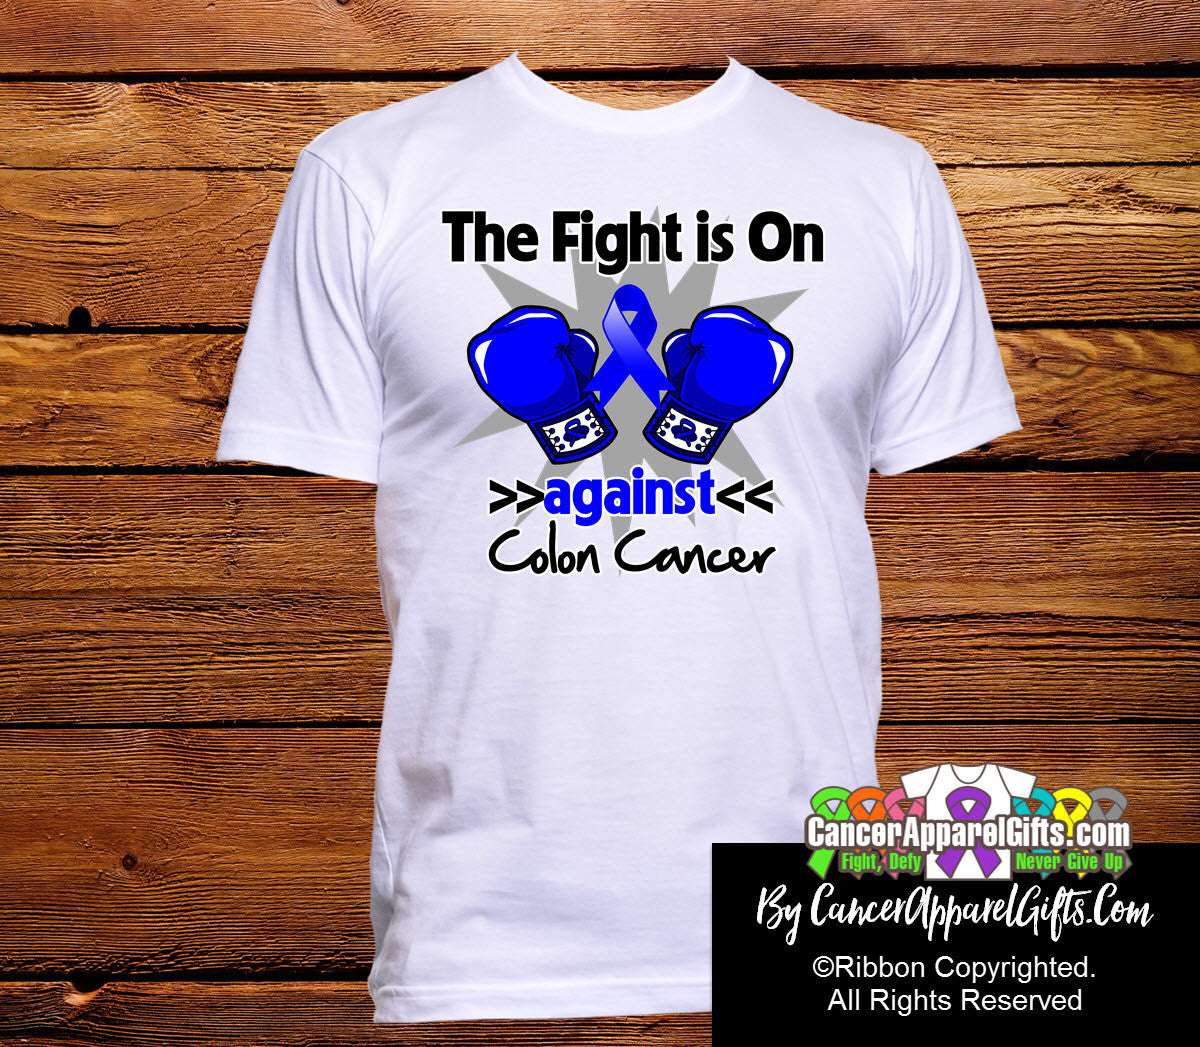 Colon Cancer The Fight Is On Shirts Cancer Apparel Gifts At Shopify